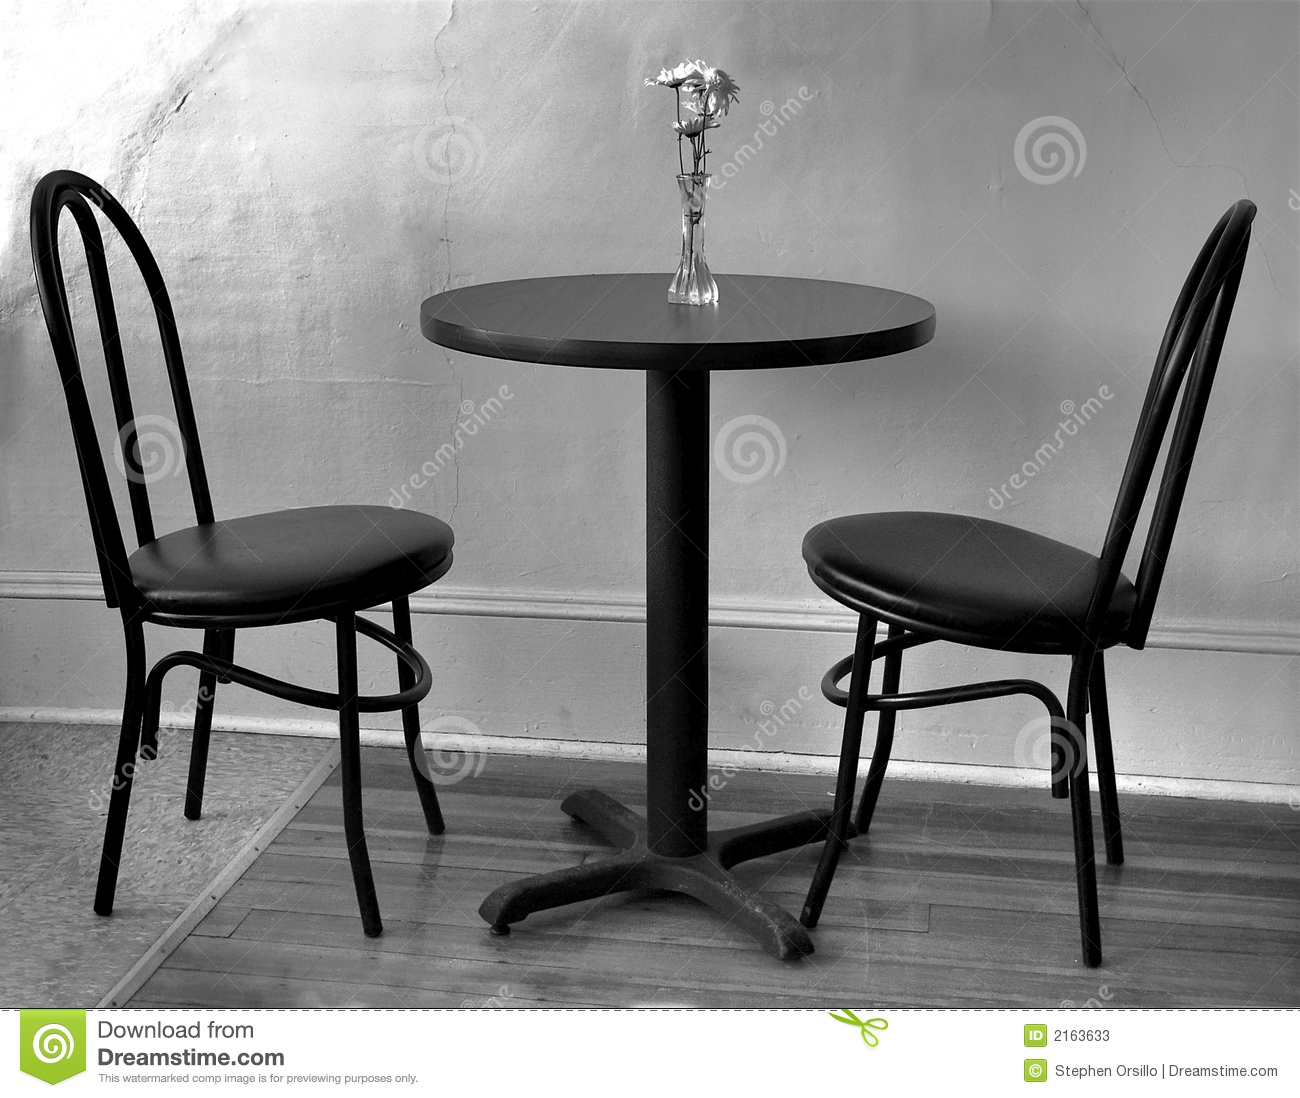 metal and wood chairs josef hoffmann chair empty cafe table stock image. image of flowers, cracked - 2163633